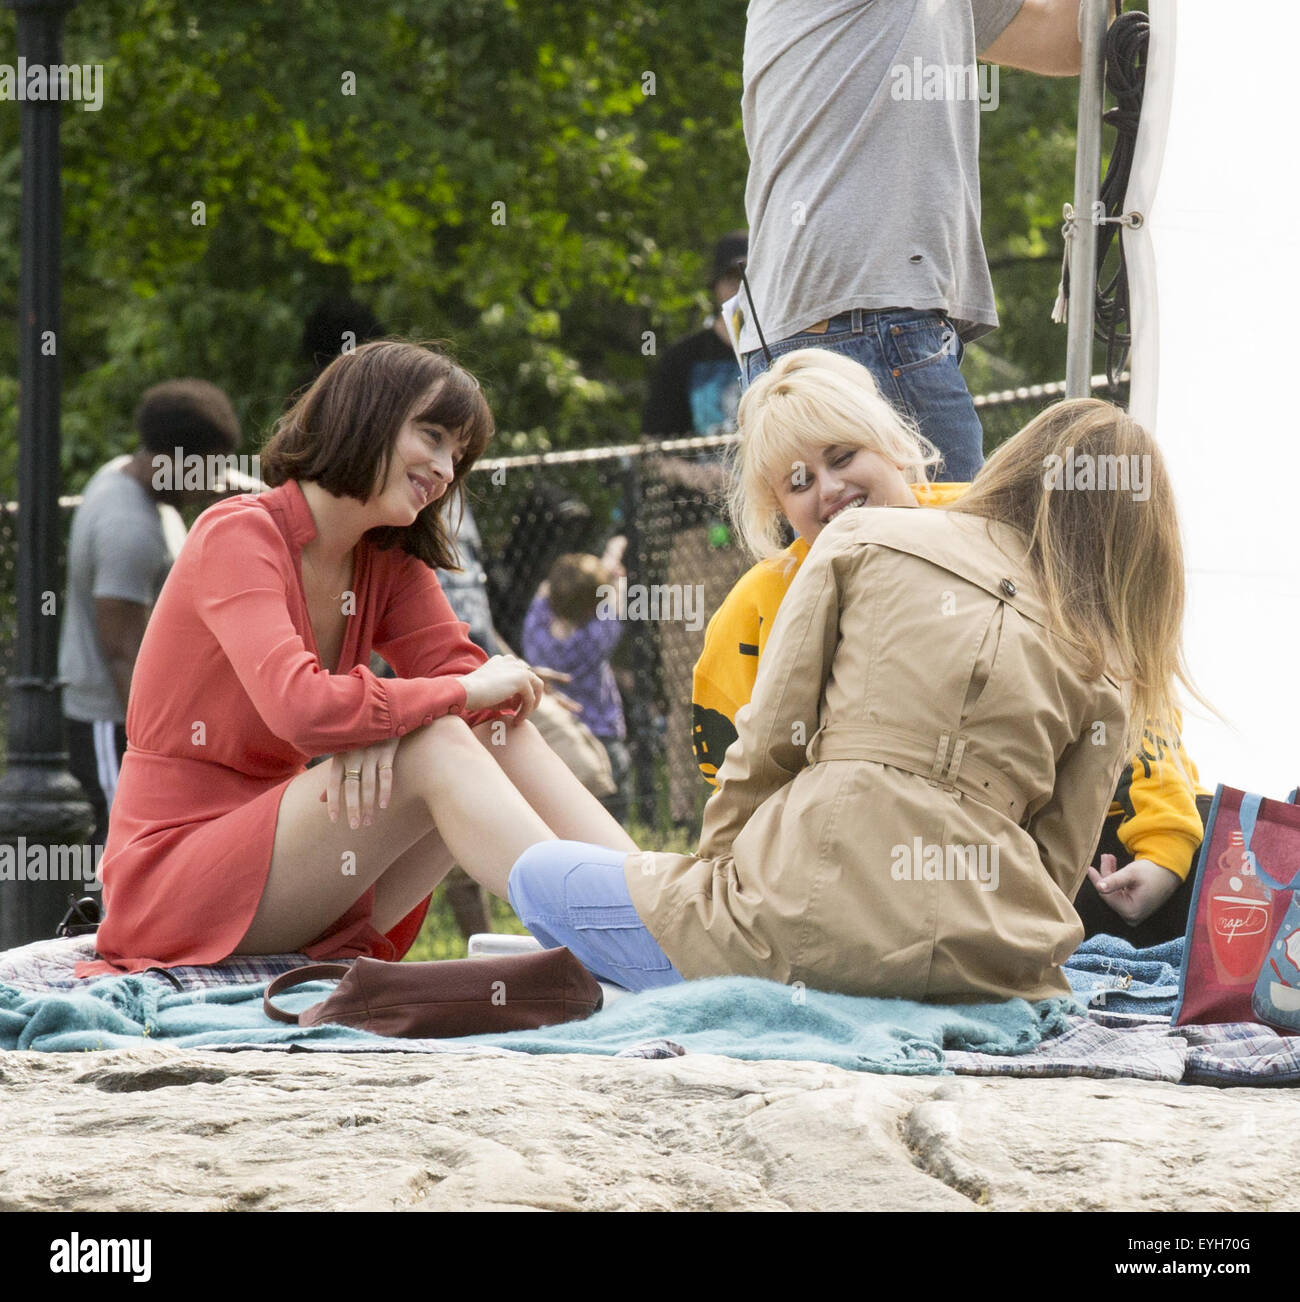 On location with how to be single featuring dakota johnson rebel on location with how to be single featuring dakota johnson rebel wilson where new york new york united states when 29 may 2015 c ccuart Images